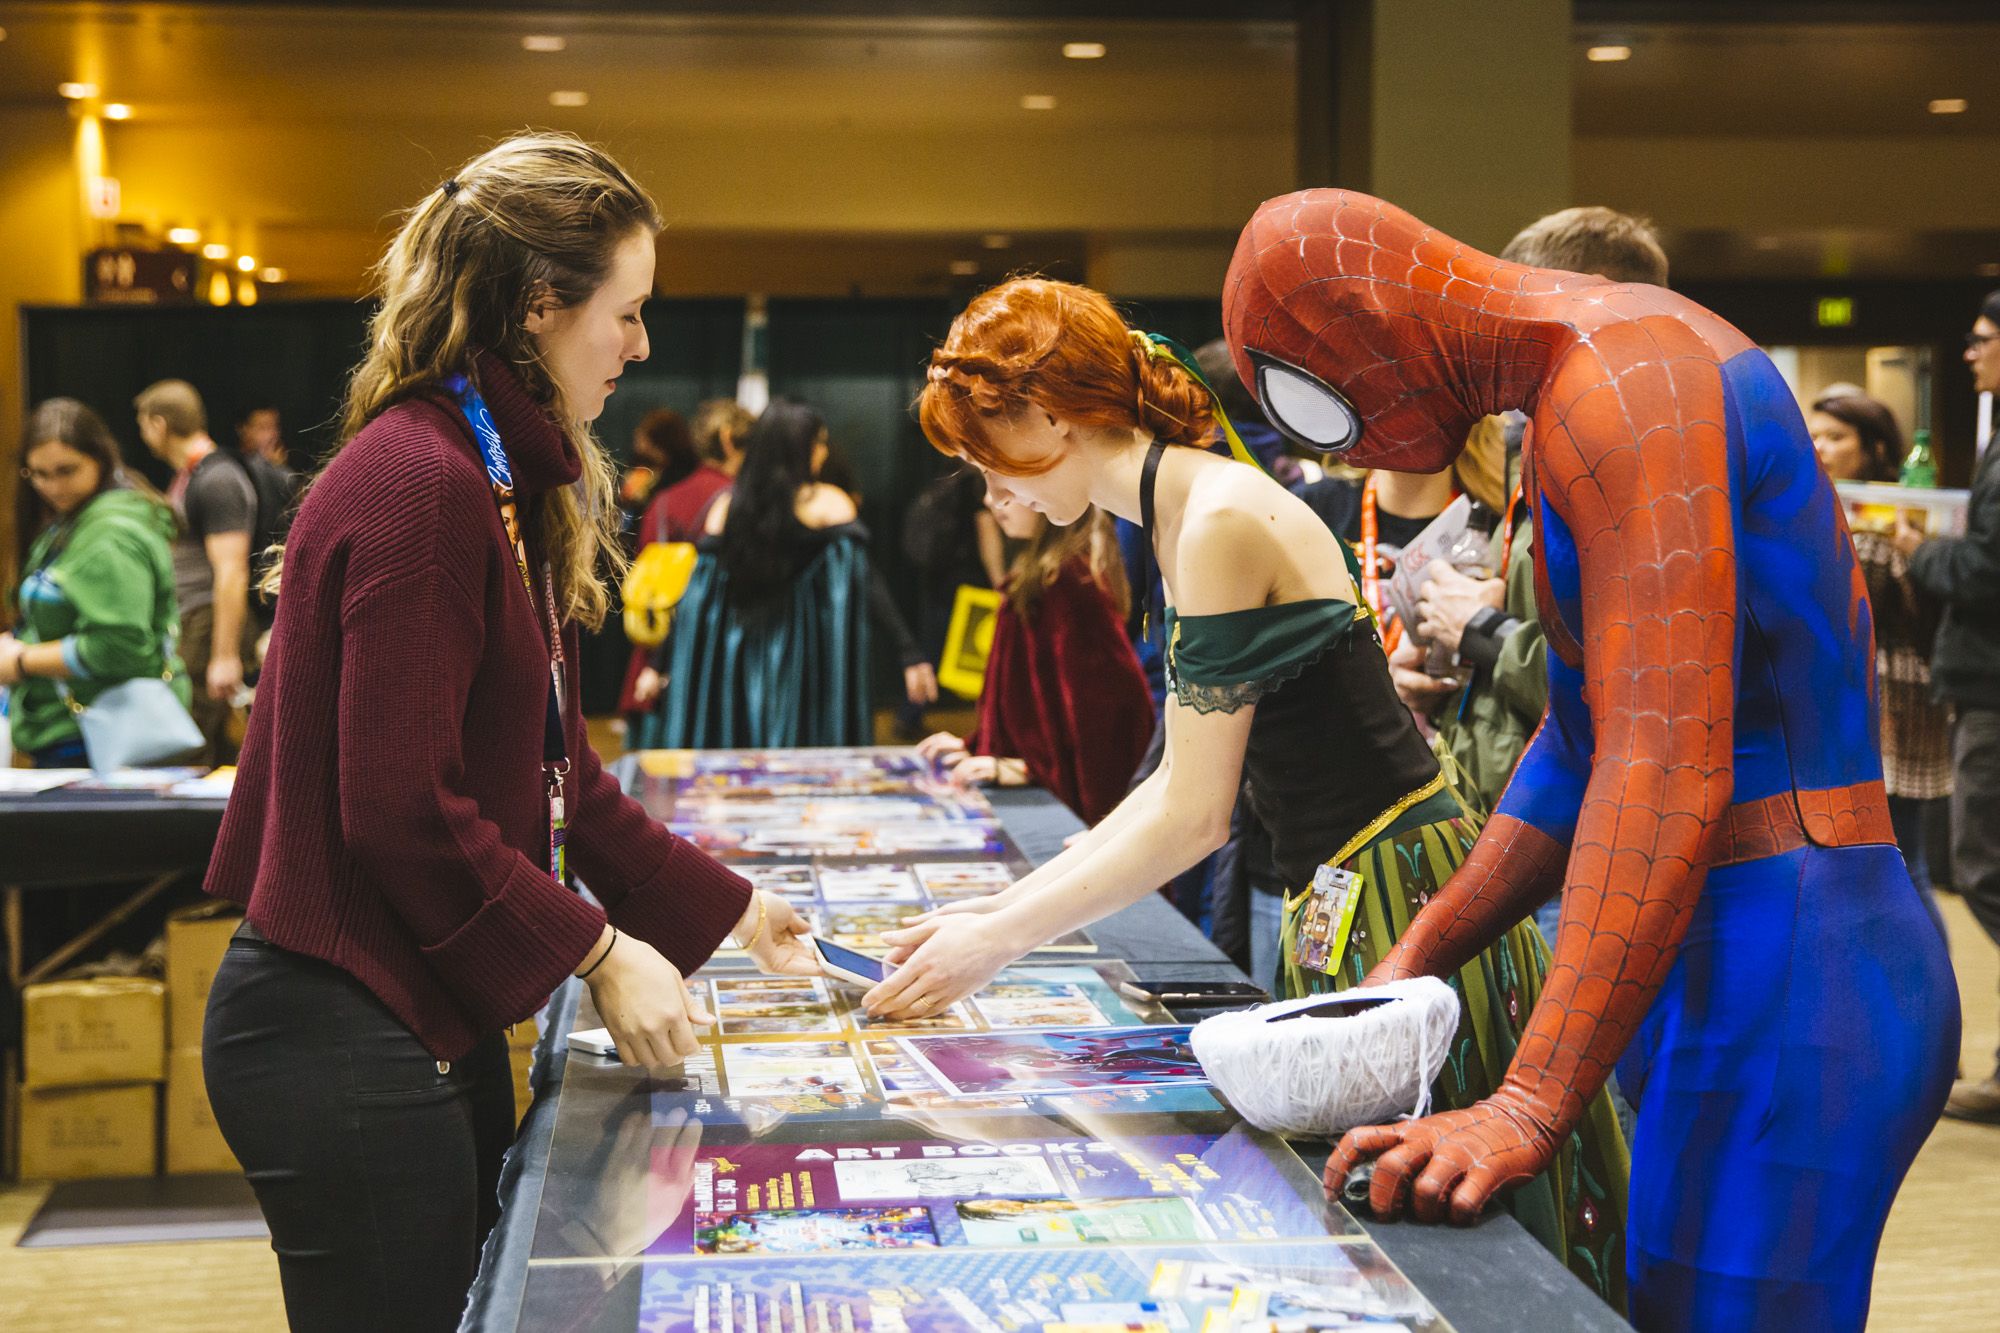 <p>Emerald City Comic Con is the largest comic book and pop culture convention in the Pacific Northwest. Thousands come to the Washington State Convention Center in Seattle for 4 days of cosplay, comic books, celebrities, panels and more. This year, they're expecting upwards of 95,000 people! Today, (March 15, 2019) marks the halfway point of ECCC. (Image: Sunita Martini / Seattle Refined){&nbsp;}</p>